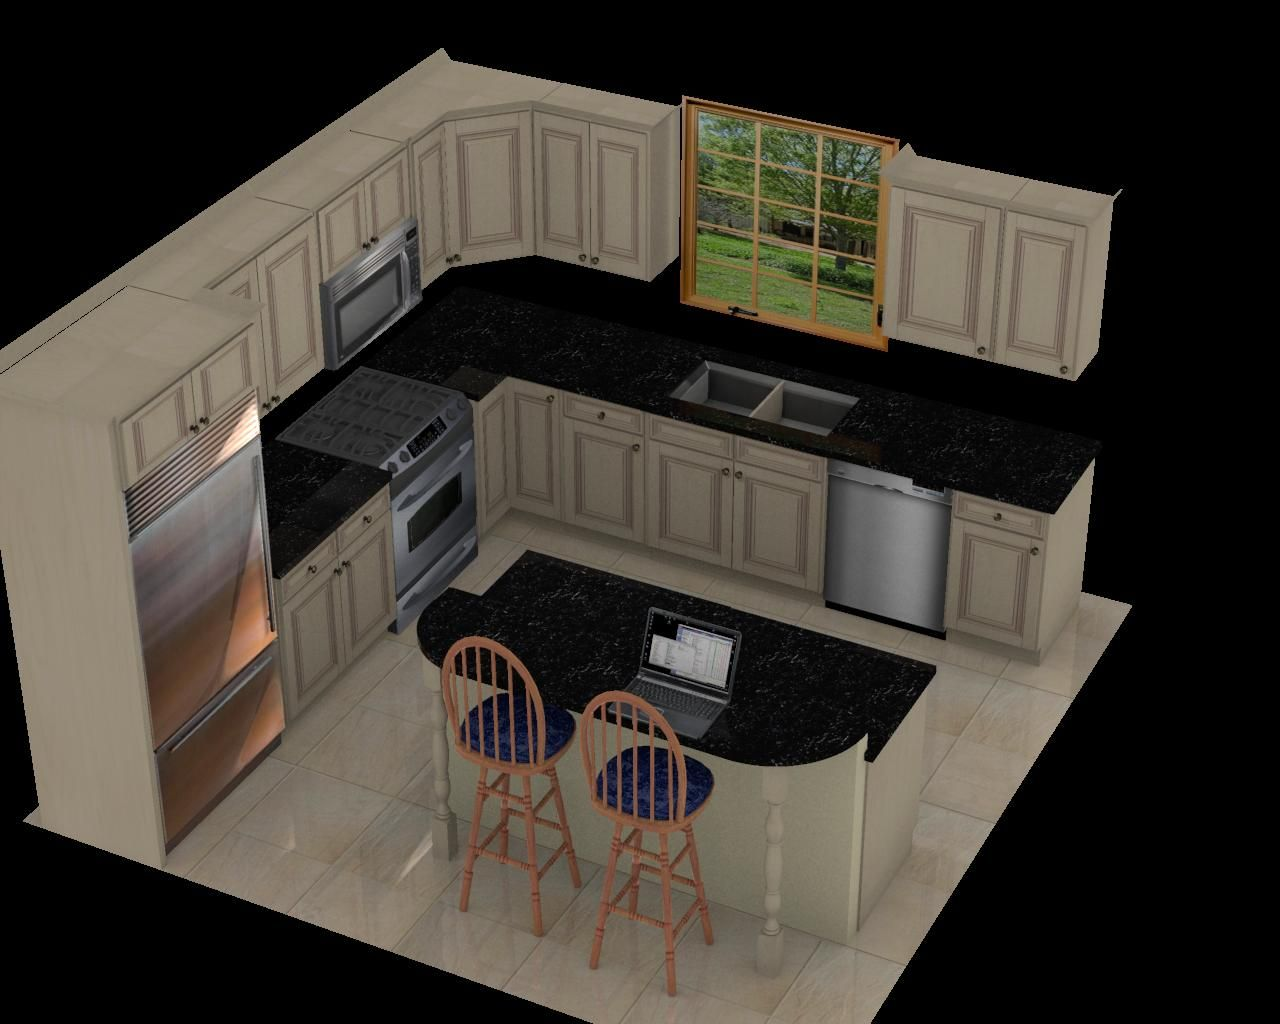 Luxury 12x12 kitchen layout with island 51 for with 12x12 for Kitchen ideas 10 x 12